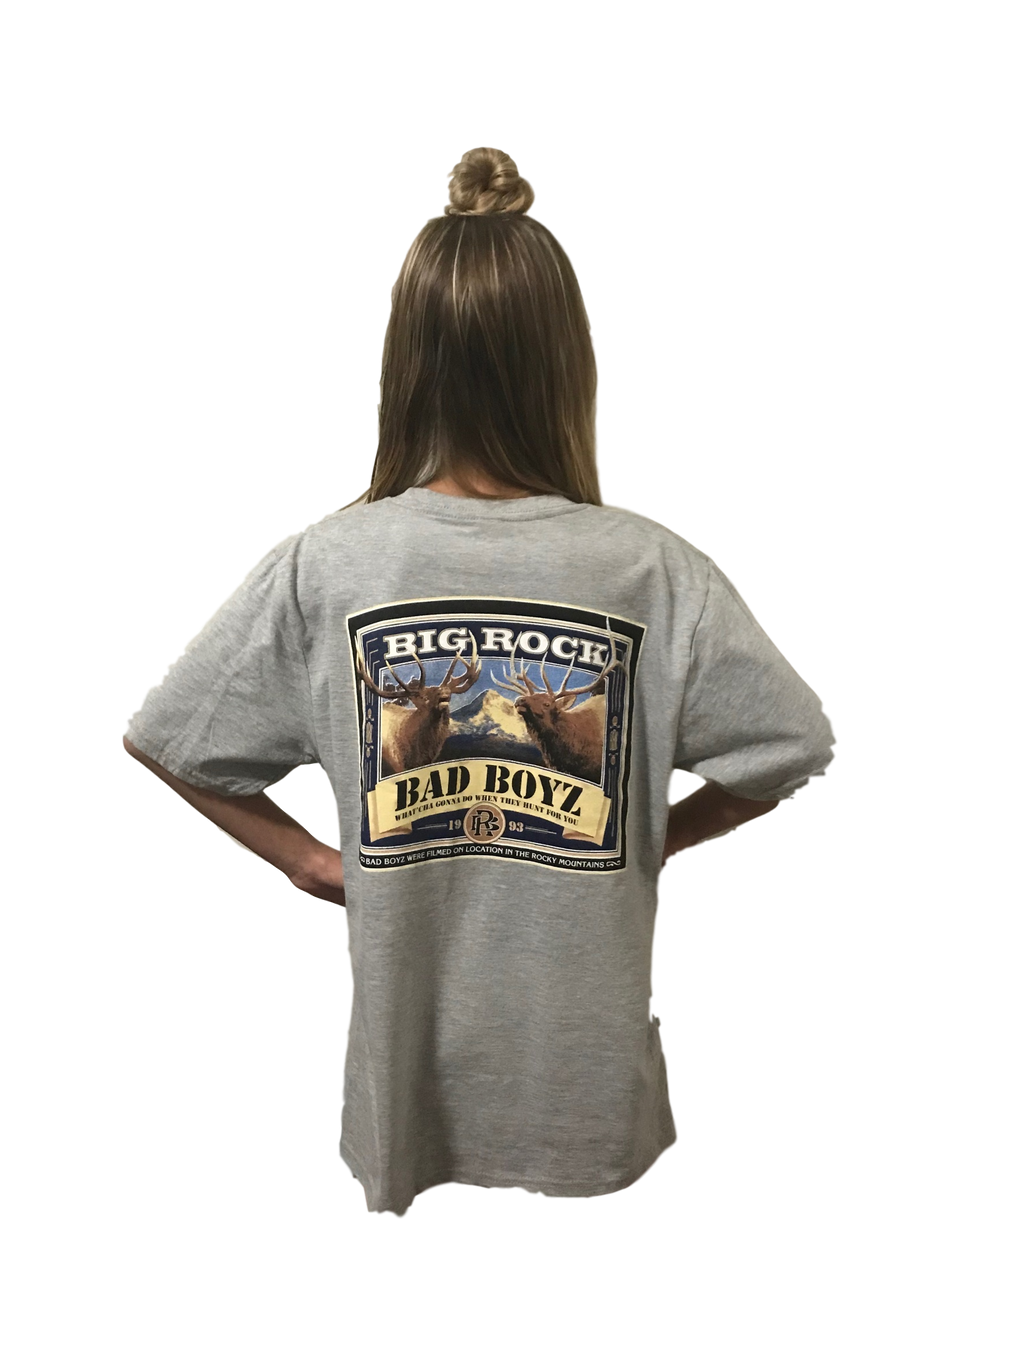 Kids Value Rock Short Sleeve Bad Boyz (Not a Big Rock Brand Shirt. Fit is like standard Tee)